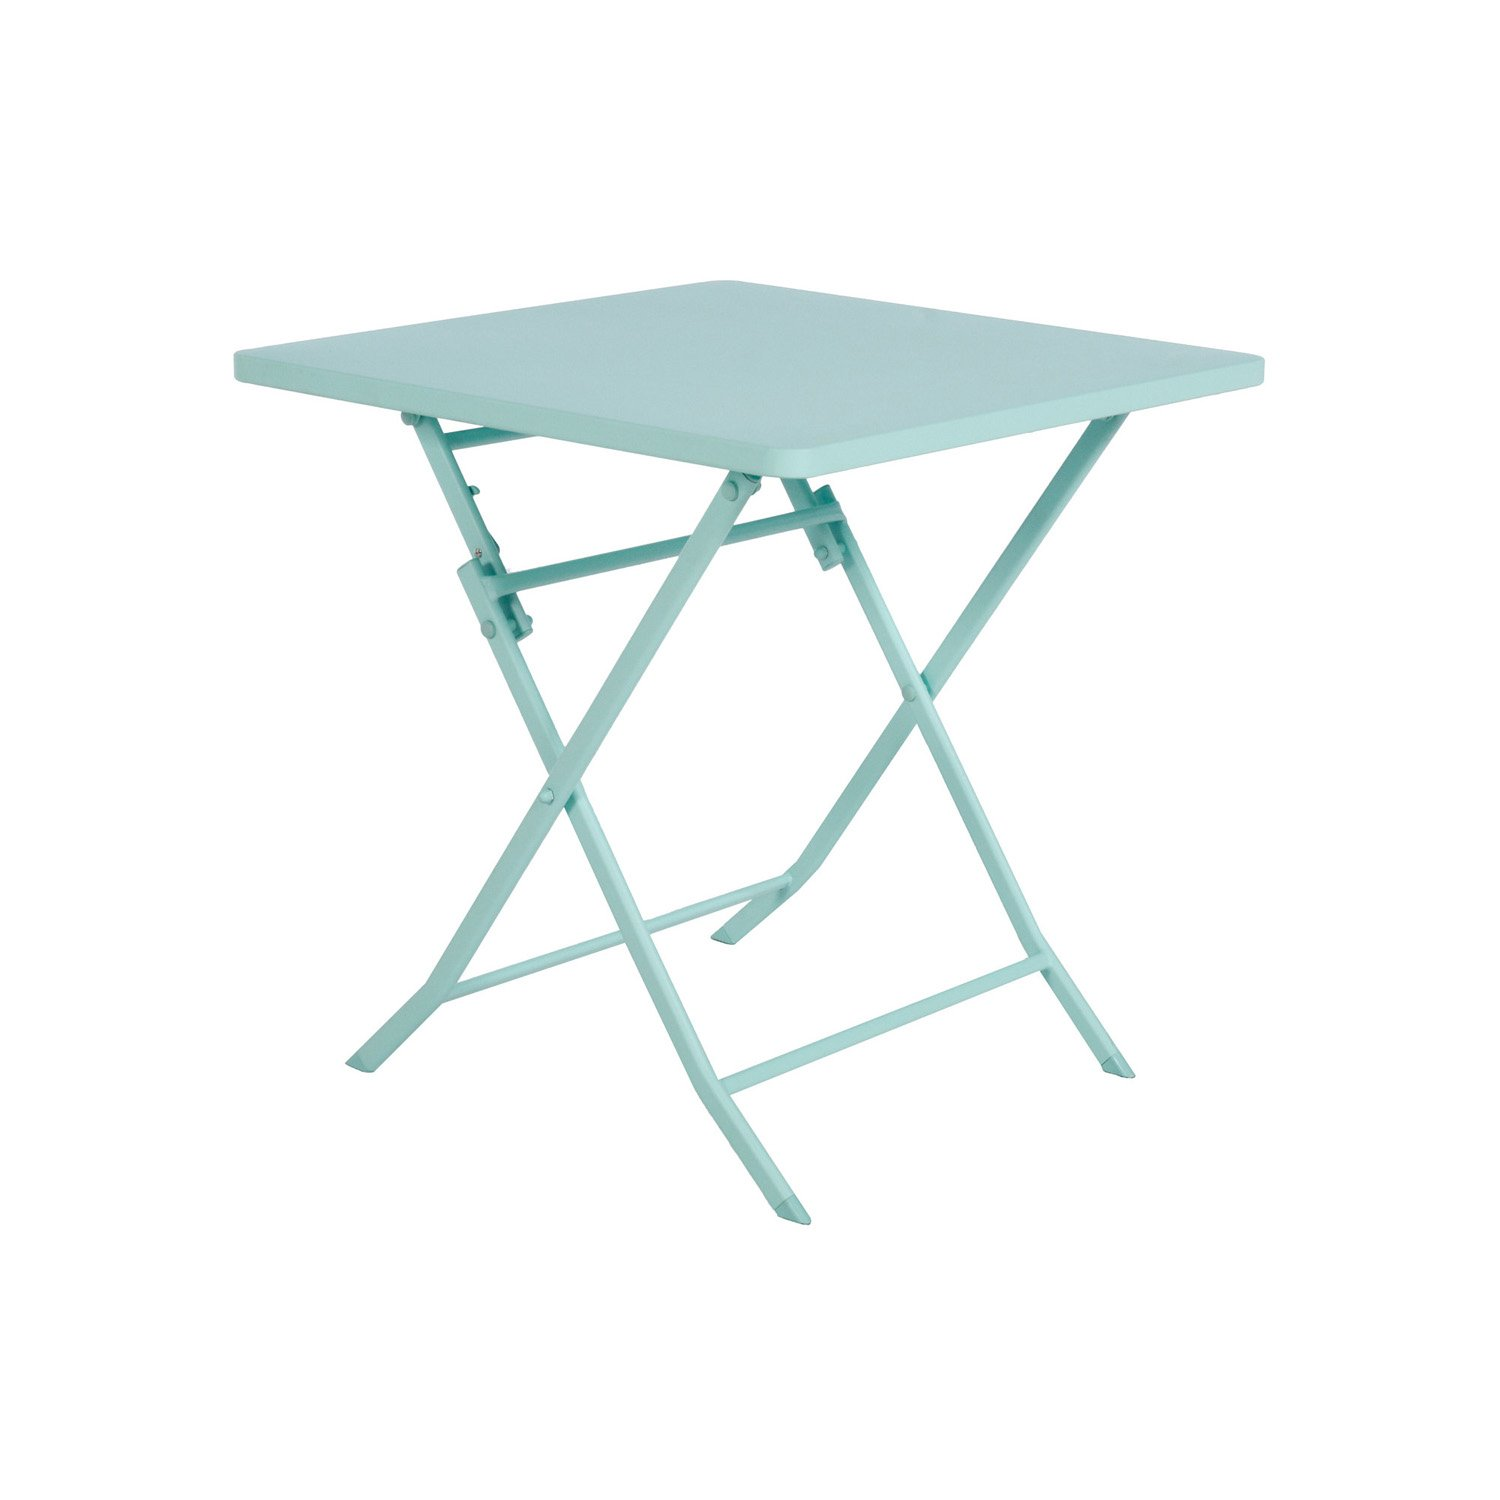 Mint Jardin Greensboro Table Carrée Hespéride SUzMVp